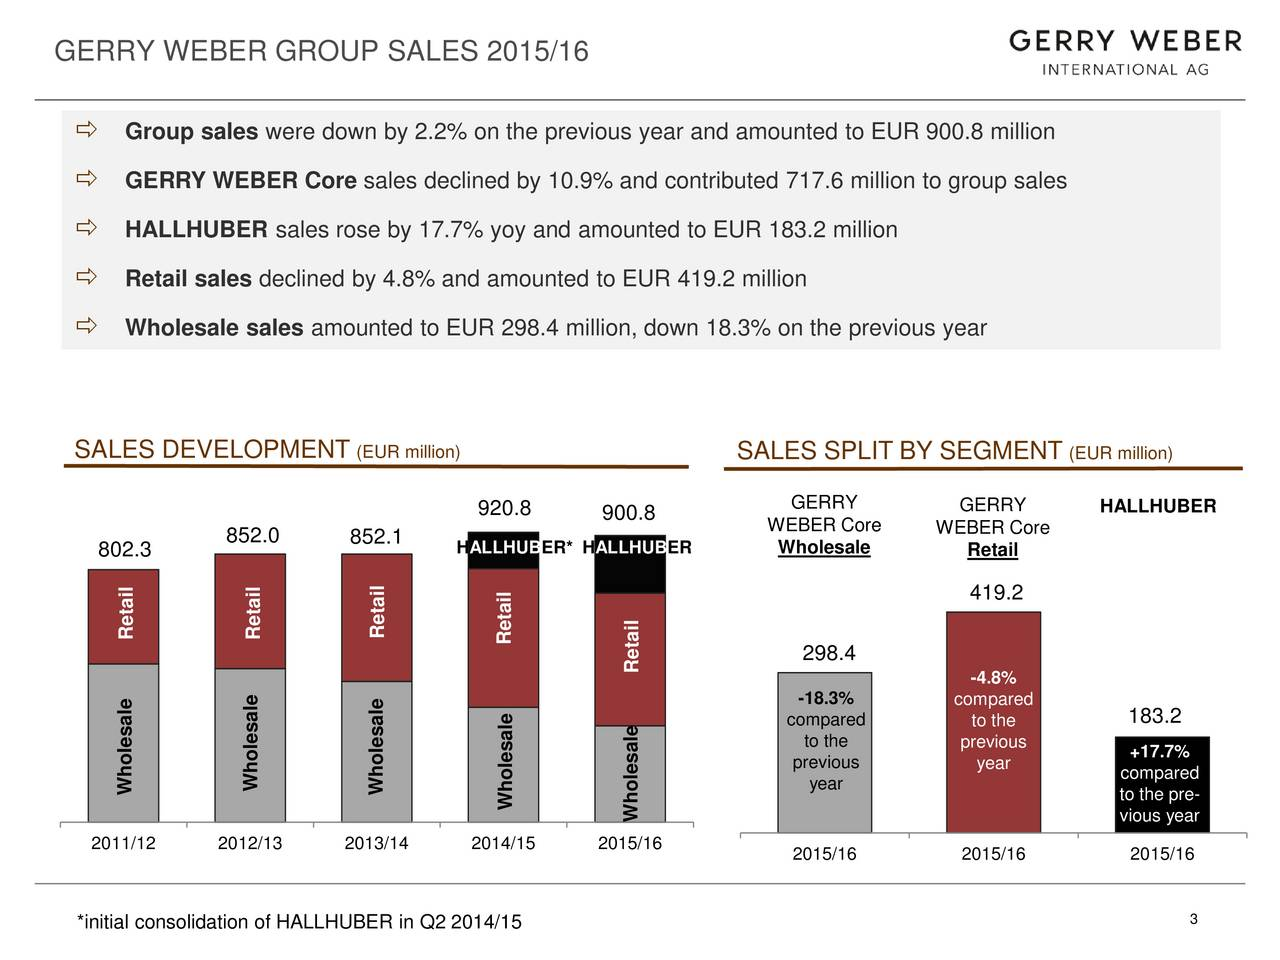 Group sales were down by 2.2% on the previous year and amounted to EUR 900.8 million GERRY WEBER Core sales declined by 10.9% and contributed 717.6 million to group sales HALLHUBER sales rose by 17.7% yoy and amounted to EUR 183.2 million Retail sales declined by 4.8% and amounted to EUR 419.2 million Wholesale sales amounted to EUR 298.4 million, down 18.3% on the previous year SALES DEVELOPMENT (EUR million) SALES SPLIT BY SEGMENT (EUR million) GERRY 920.8 900.8 GERRY HALLHUBER 852.0 852.1 WEBER Core WEBER Core 802.3 HALLHUBER* HALLHUBER Wholesale Retail 419.2 Retail Retail Retail Retail 298.4 Retail -4.8% -18.3% compared compared to the 183.2 to the previous +17.7% previous year Wholesale Wholesale Wholesale year compared Wholesale to the pre- Wholesale vious year 2011/12 2012/13 2013/14 2014/15 2015/16 2015/16 2015/16 2015/16 *initial consolidation of HALLHUBER in Q2 2014/15 3